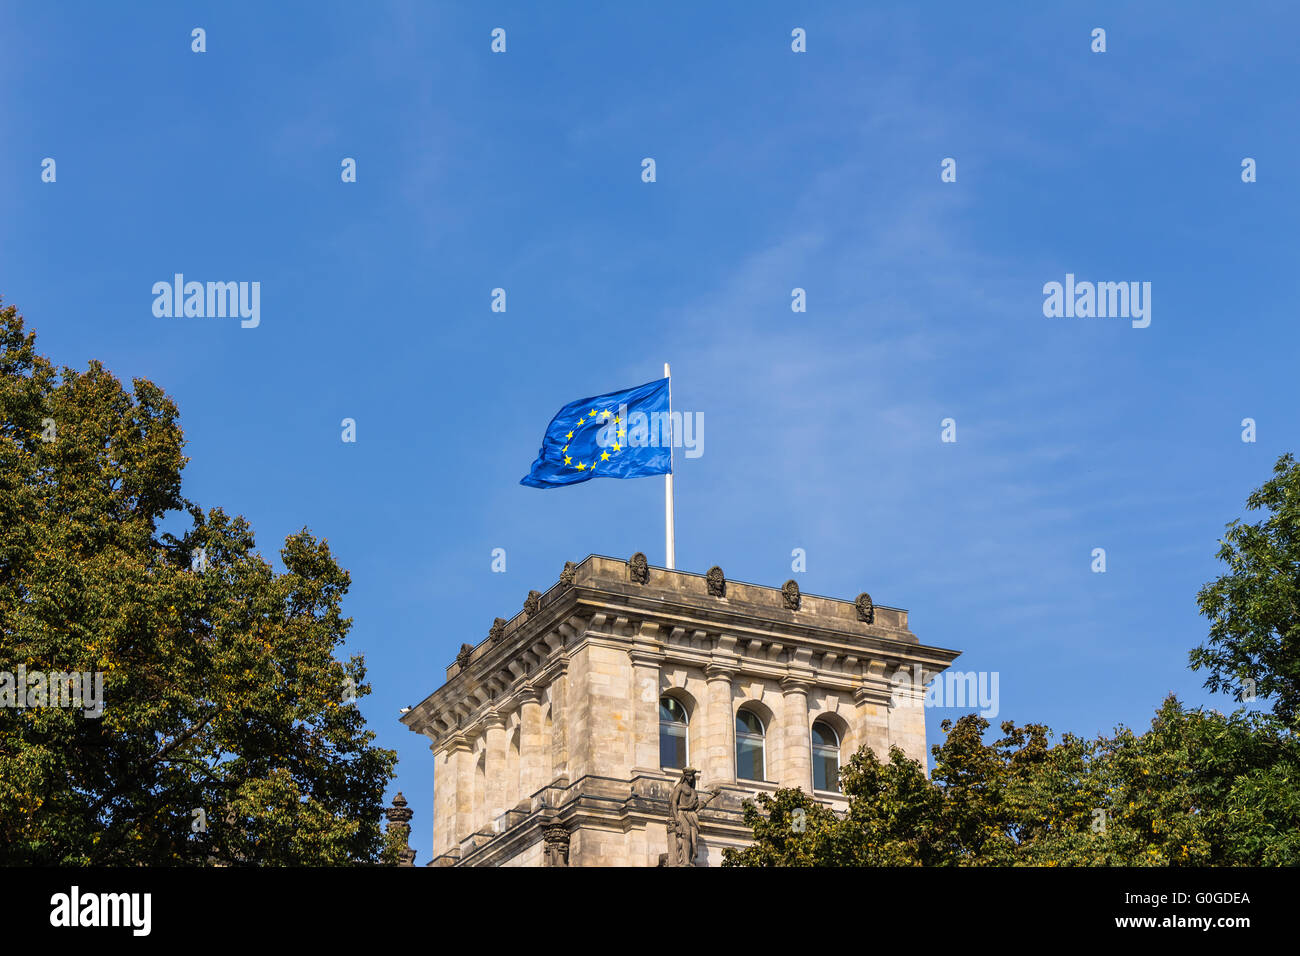 Flags on the Reichstag building Berlin - Stock Image